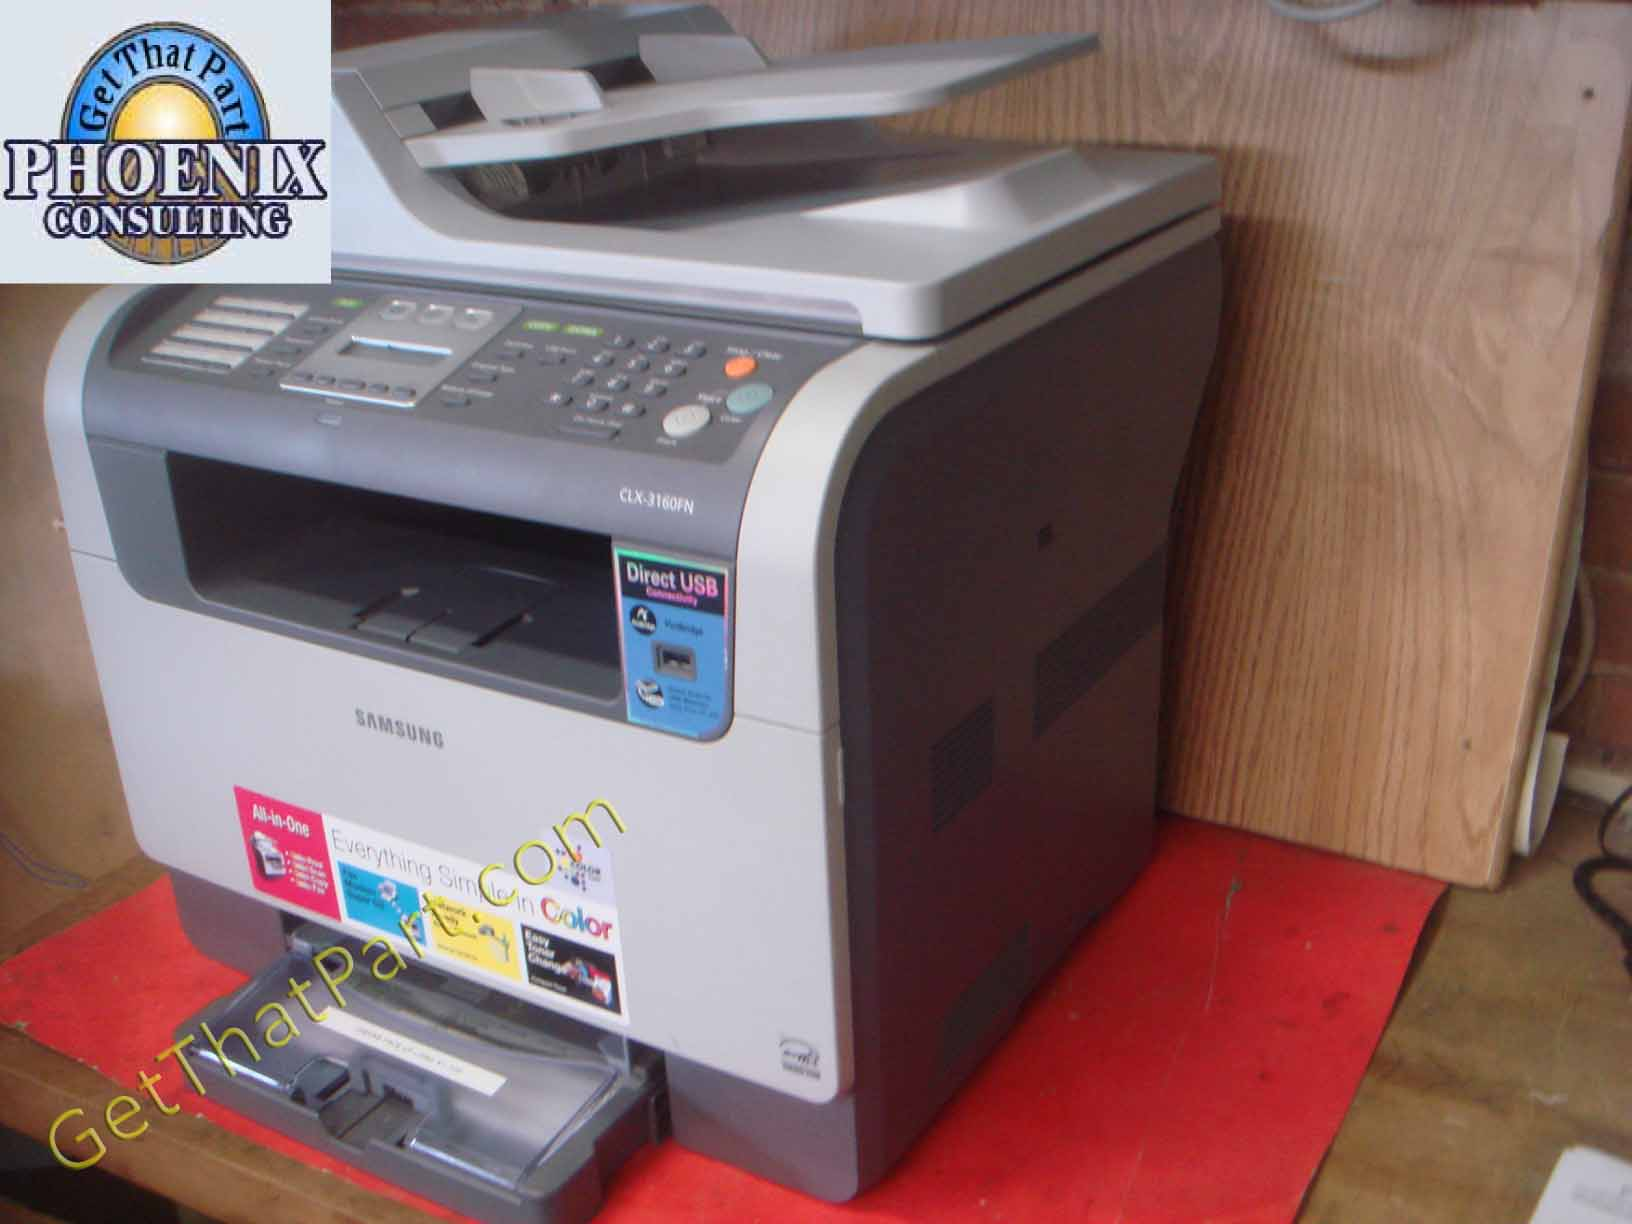 3160FN PRINTER DRIVER FOR WINDOWS DOWNLOAD